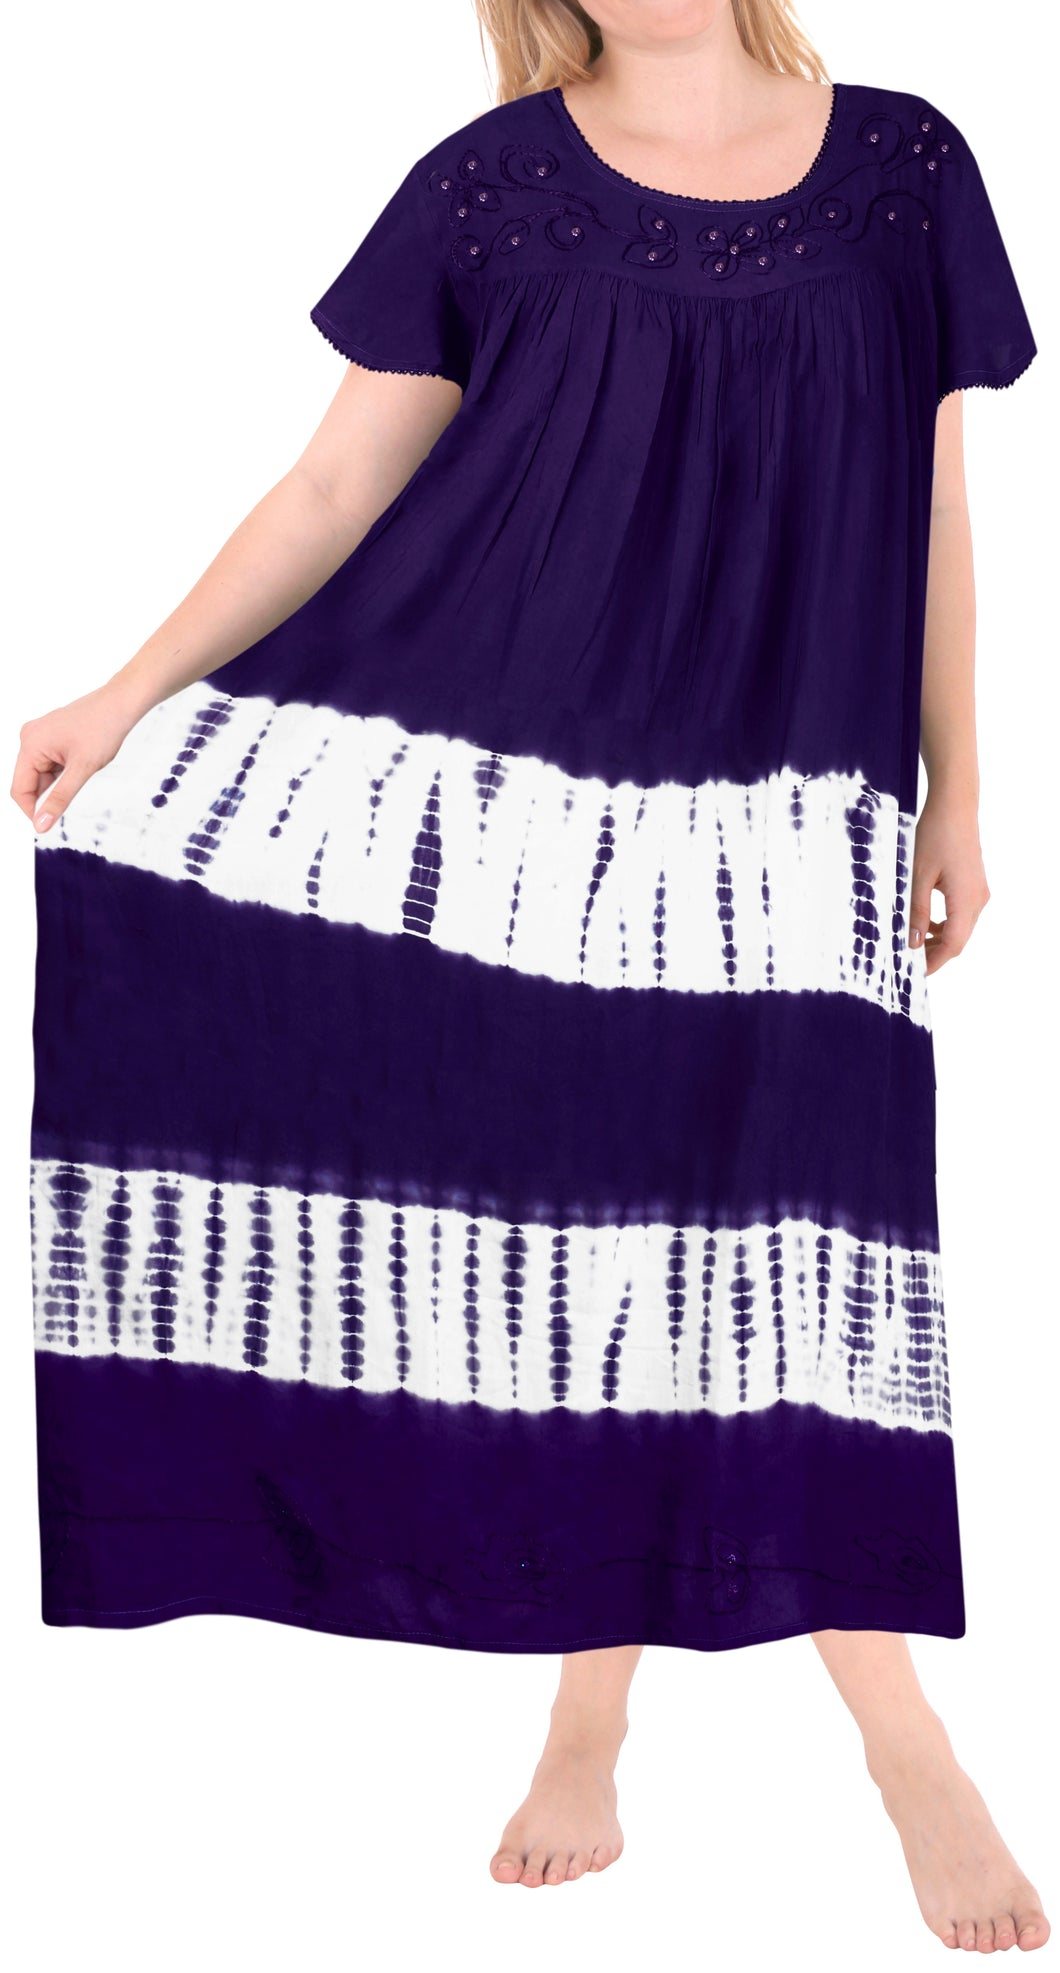 la-leela-rayon-tie-dye-casual-tank-tube-dress-beach-cover-up-purple_l654-osfm-14-22w-l-3x